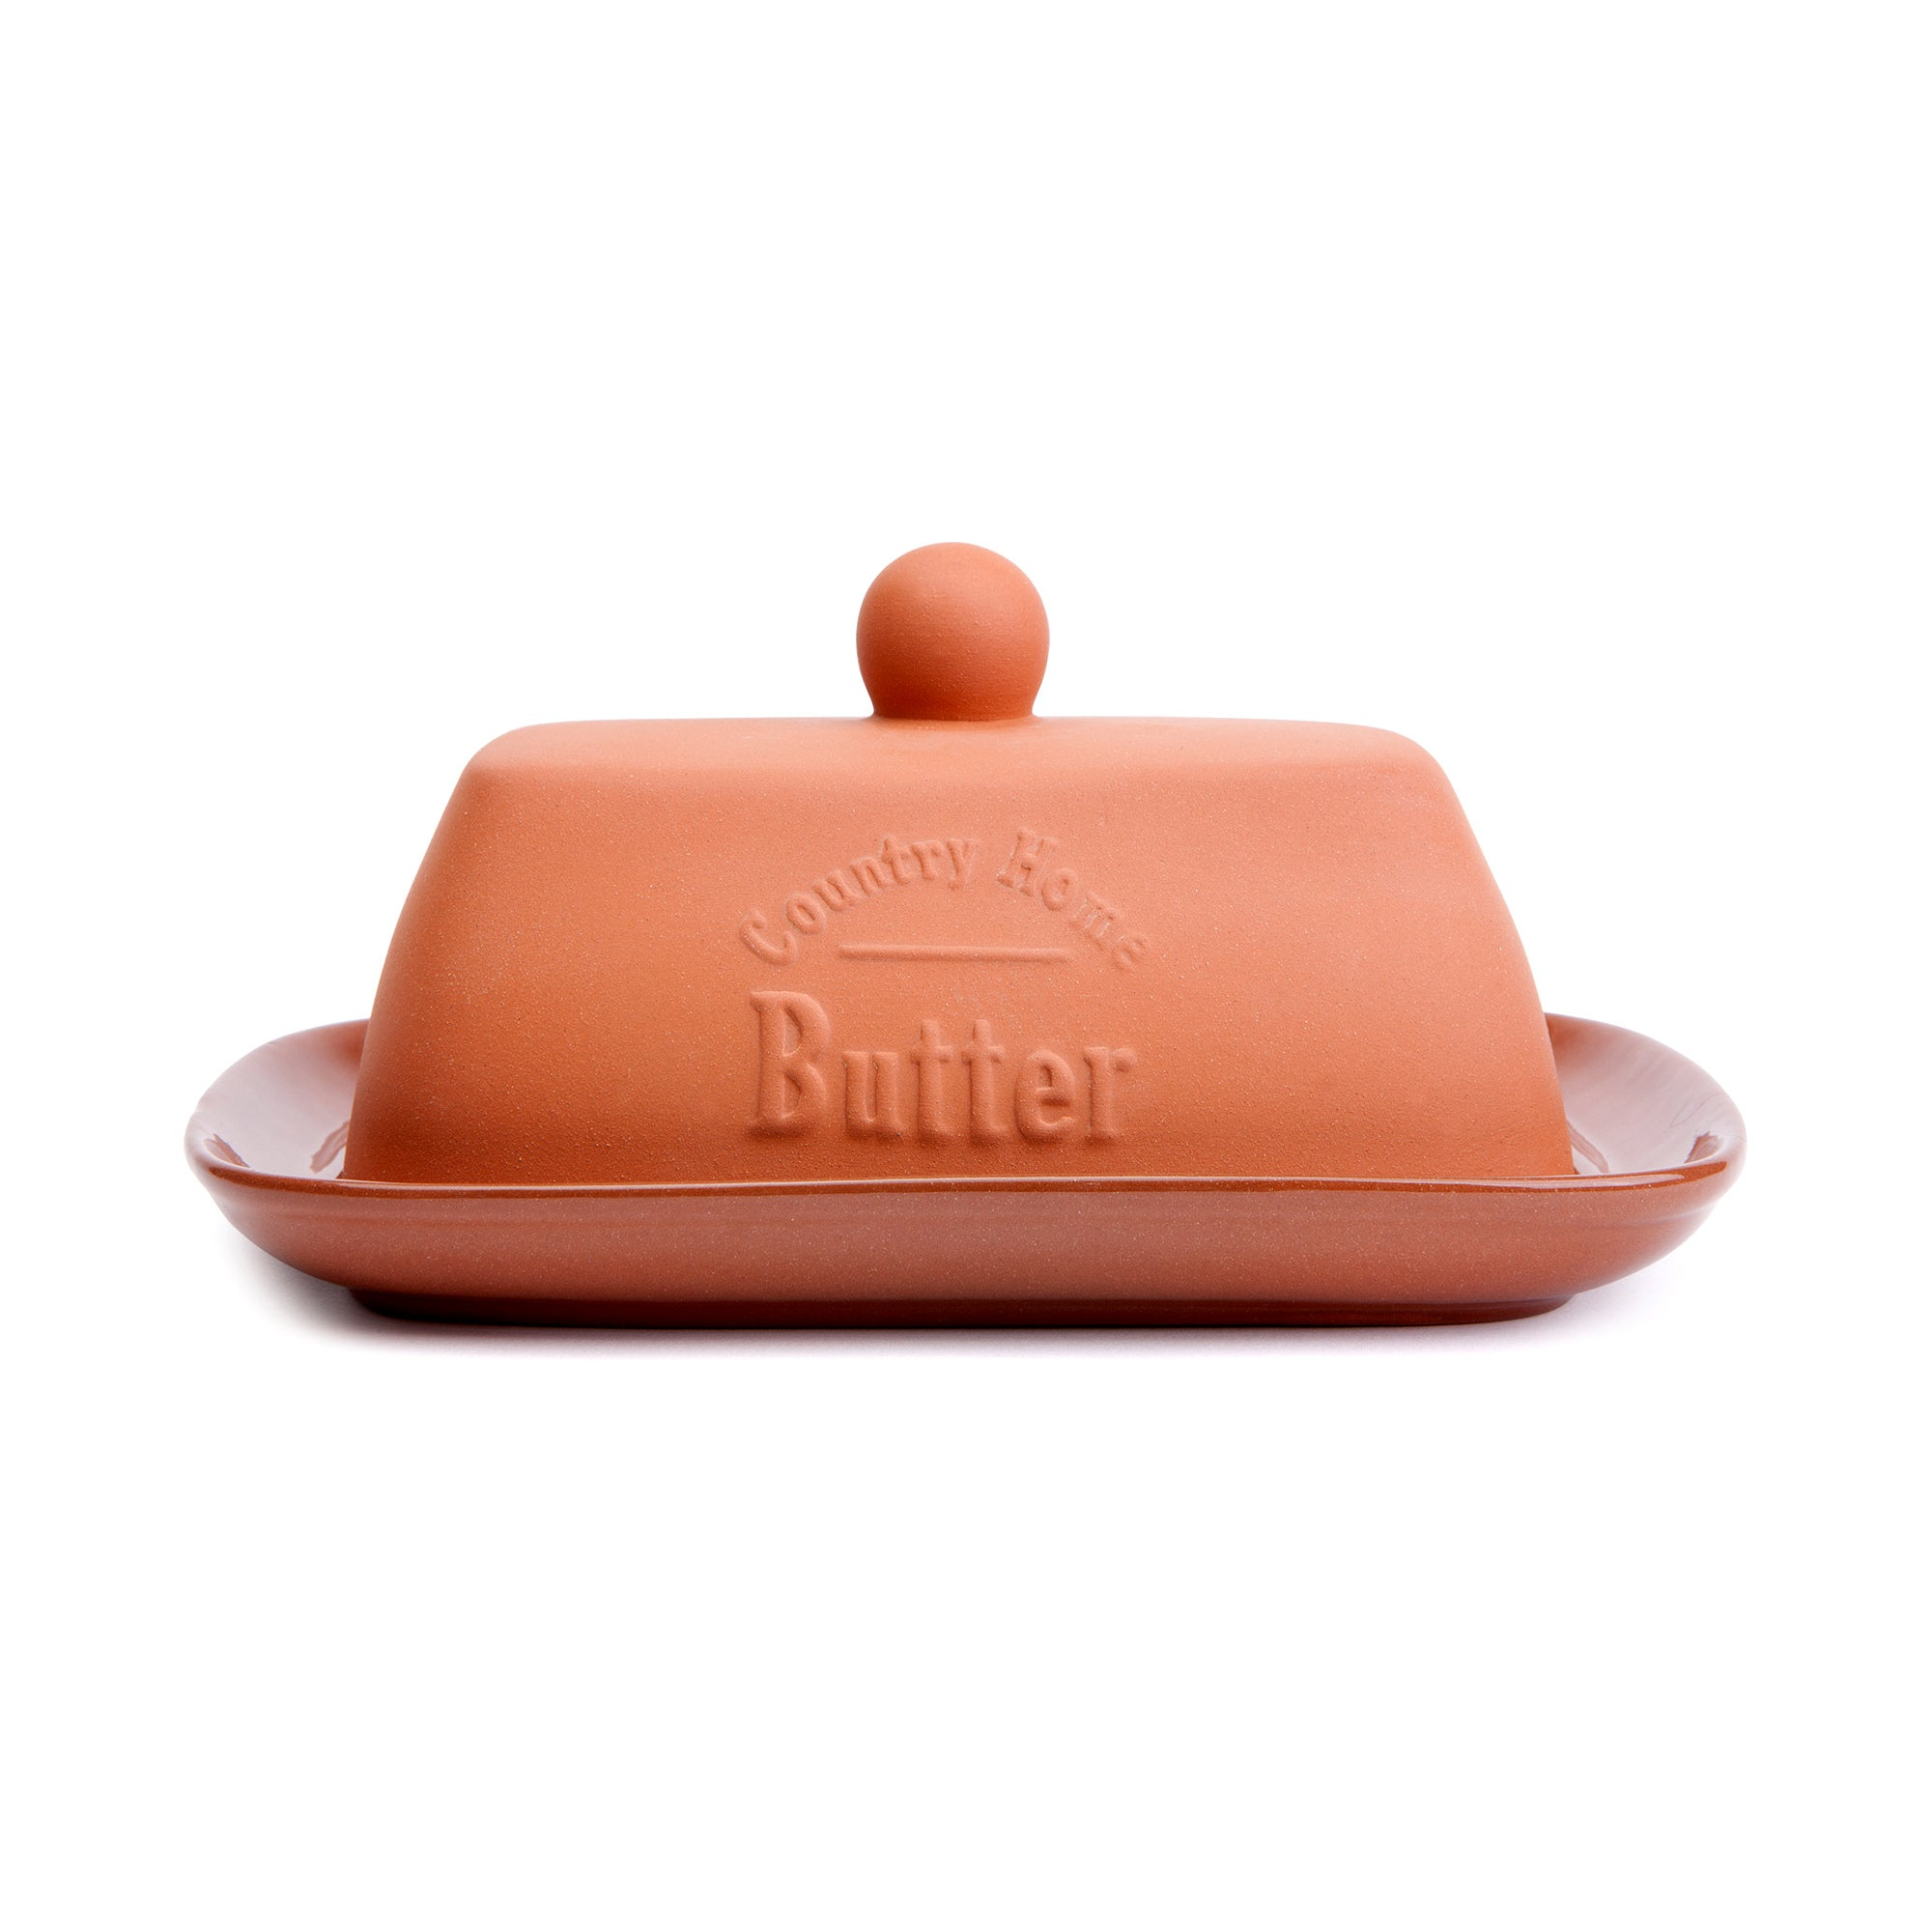 Terracotta Collection Butter Dish